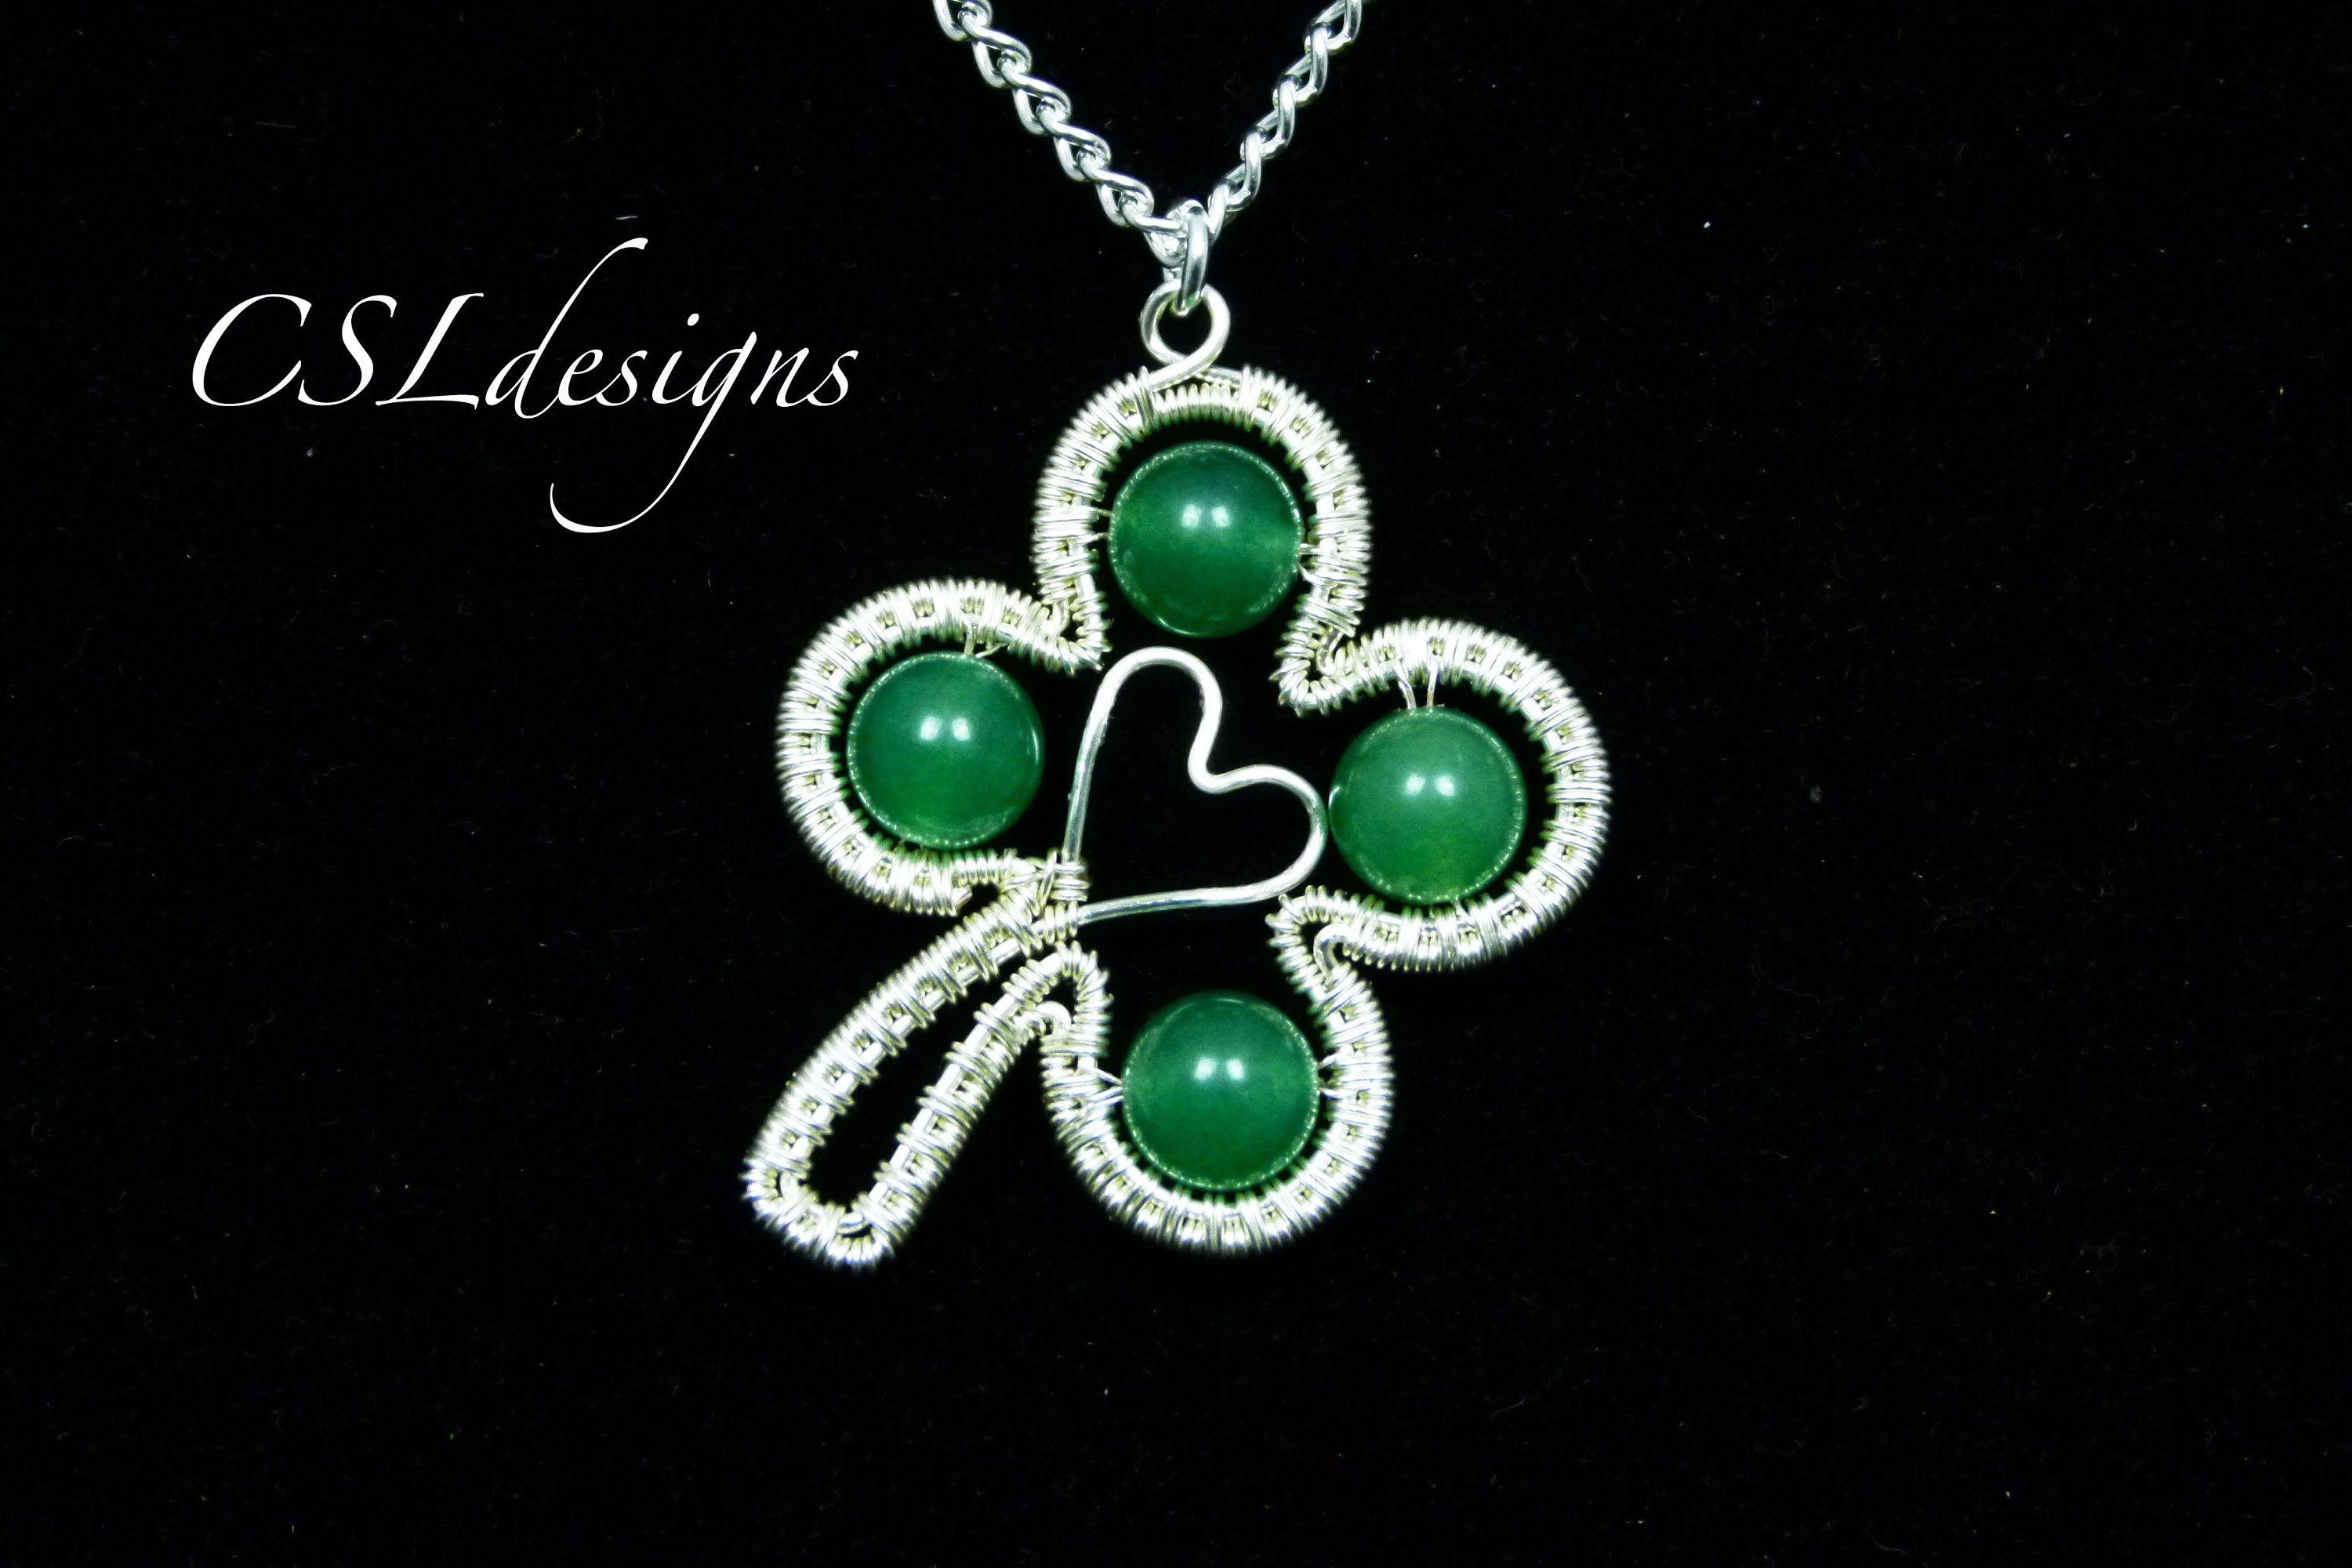 Green lucky shamrock necklace four leaf clover charm emerald green - In This Tutorial I Show You How To Make A Four Leaf Clover Wirework Pendant That S Perfect For St Patrick S Day Or Even As A Good Luck Charm